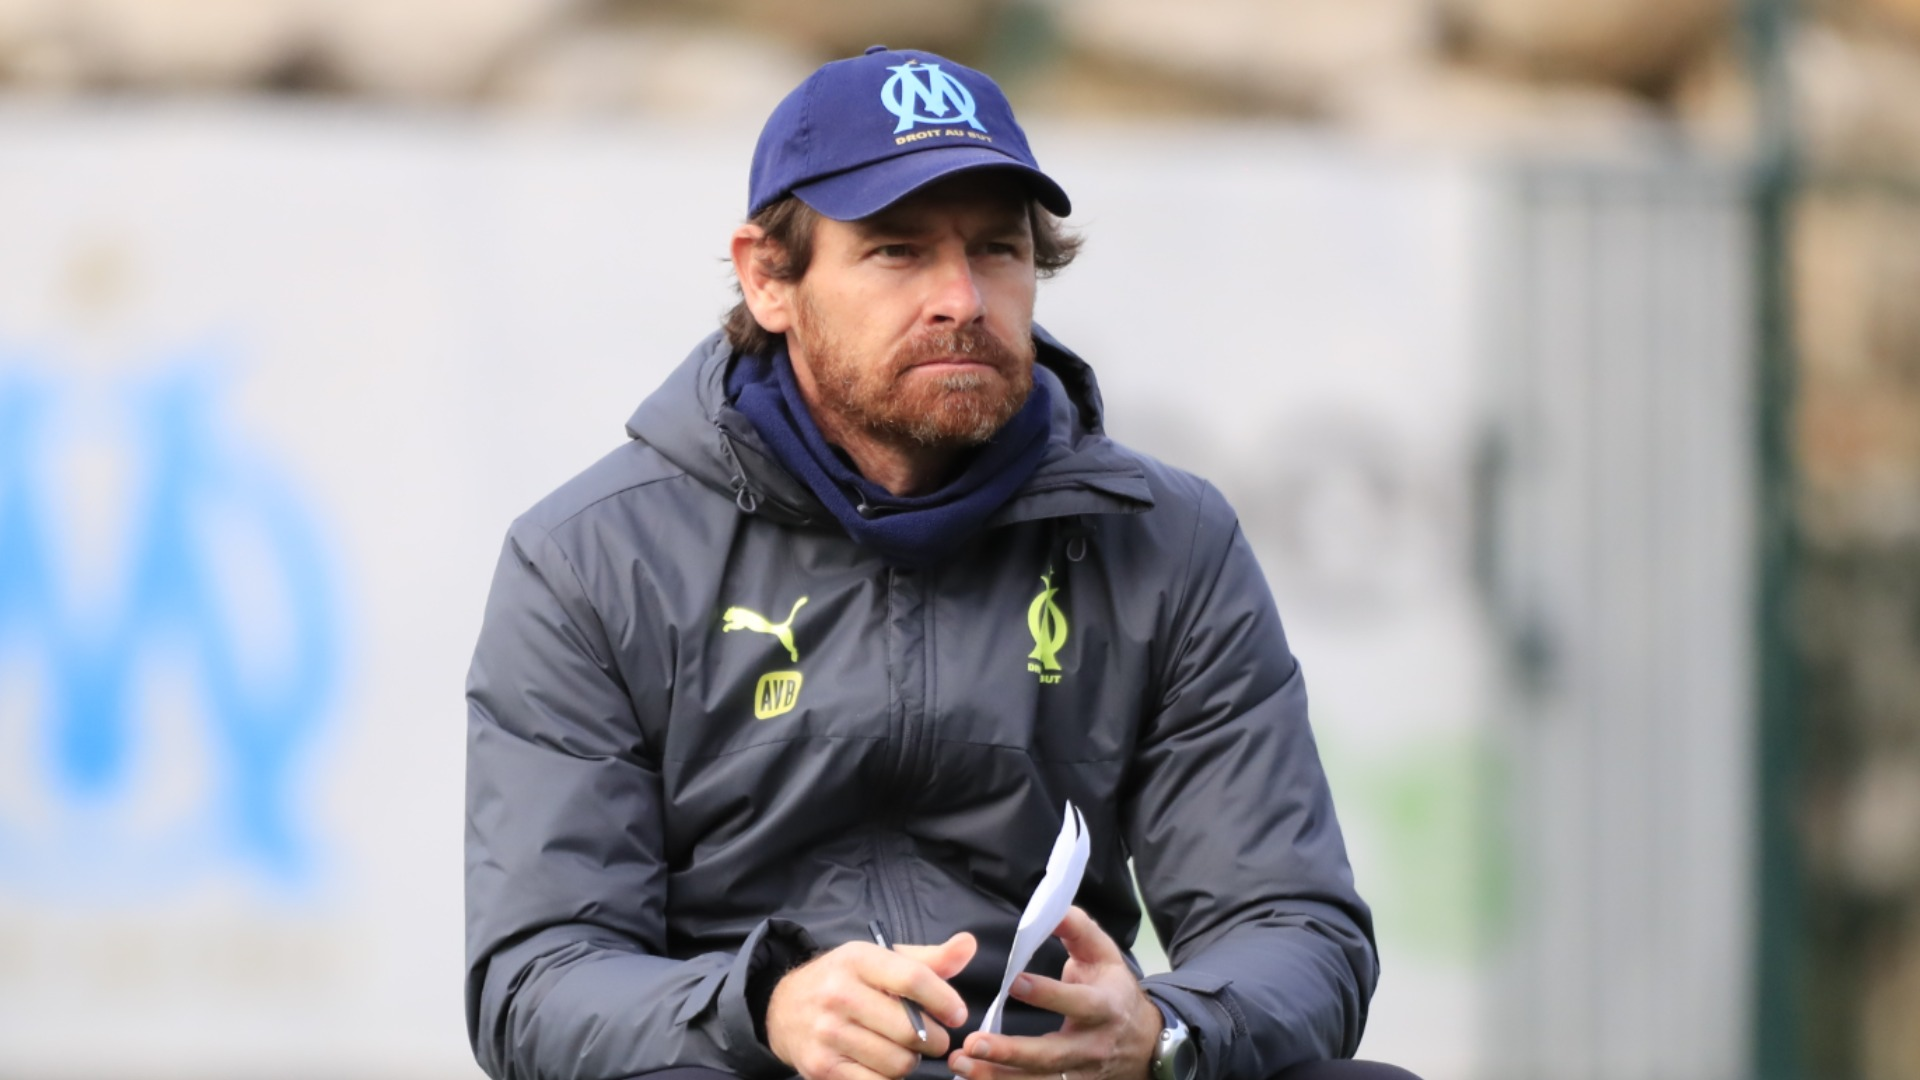 Villas-Boas offers Marseille resignation over Ntcham signing